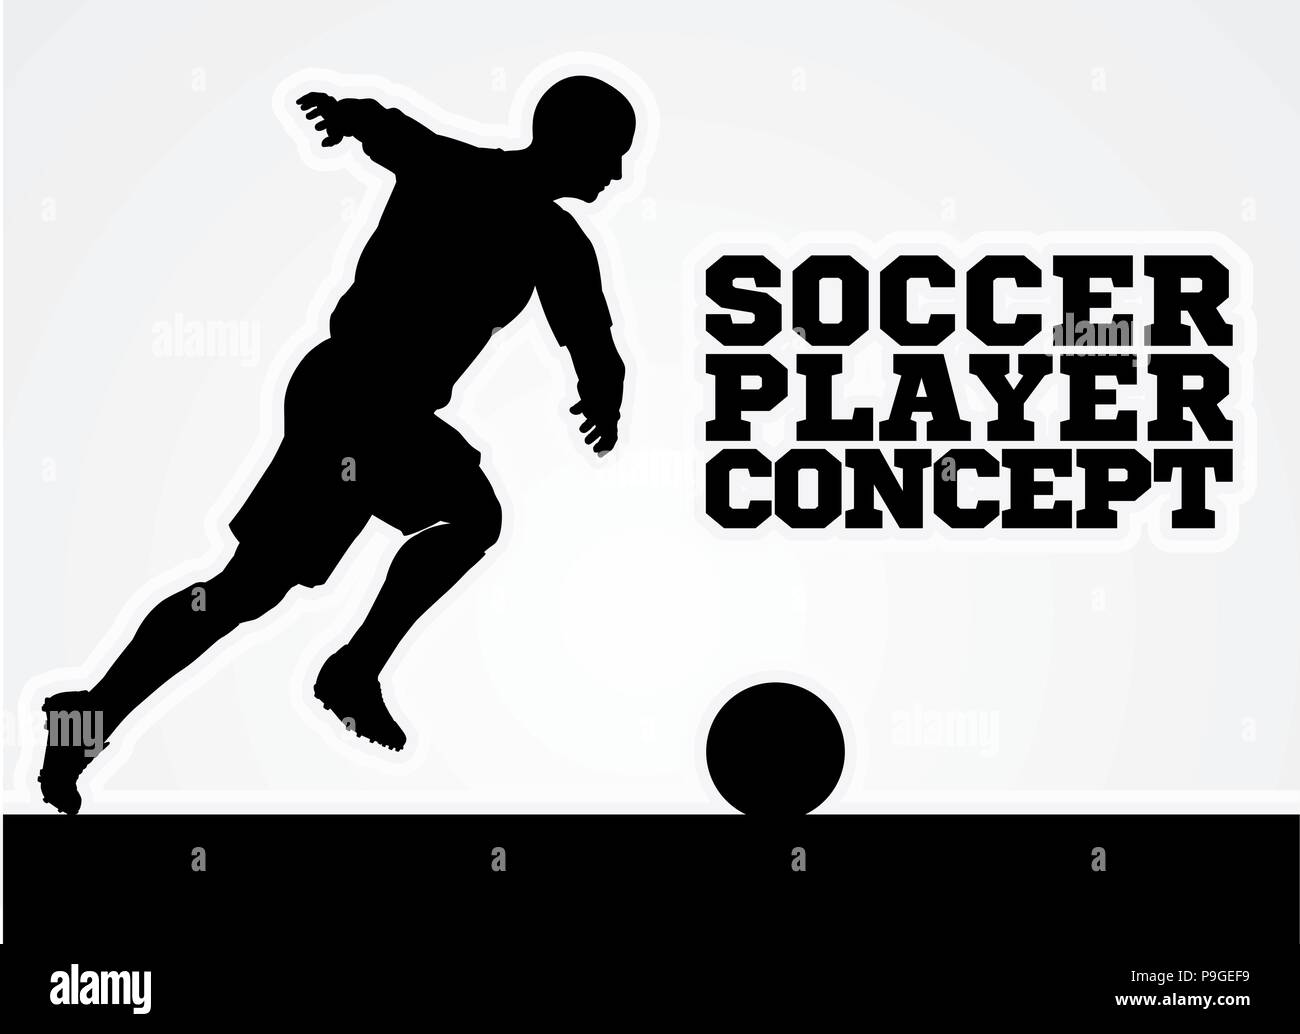 Soccer Player Silhouette Concept - Stock Image